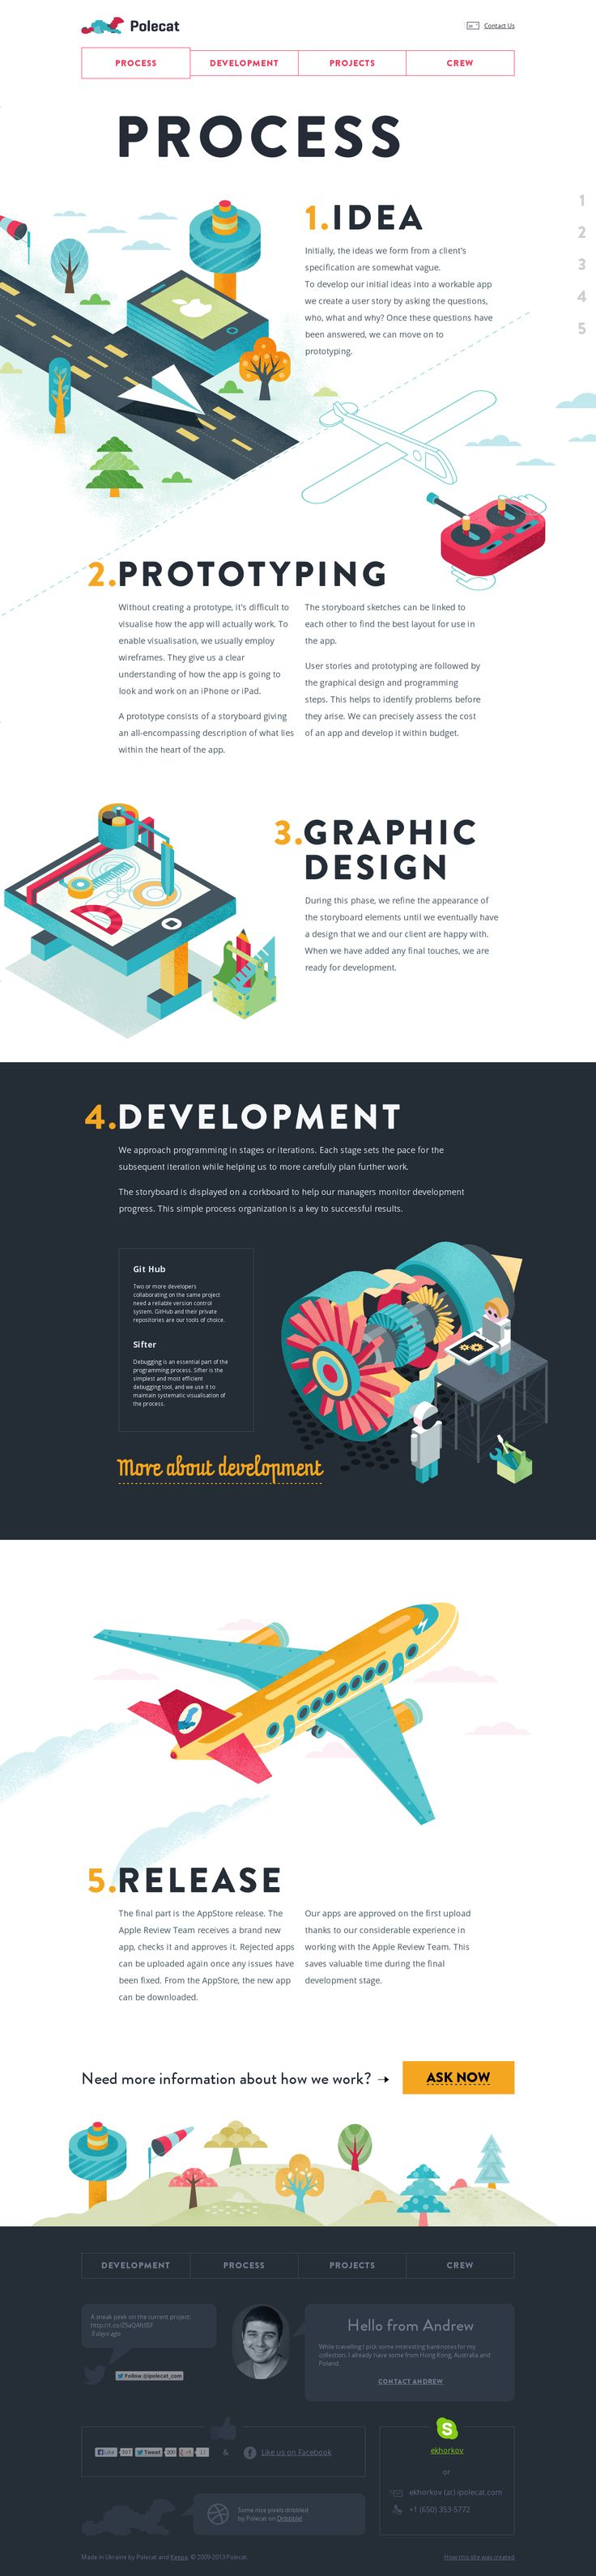 "pinterest.com/fra411 #webdesign - ""We make iPhone & iPad apps"" #flatdesign"